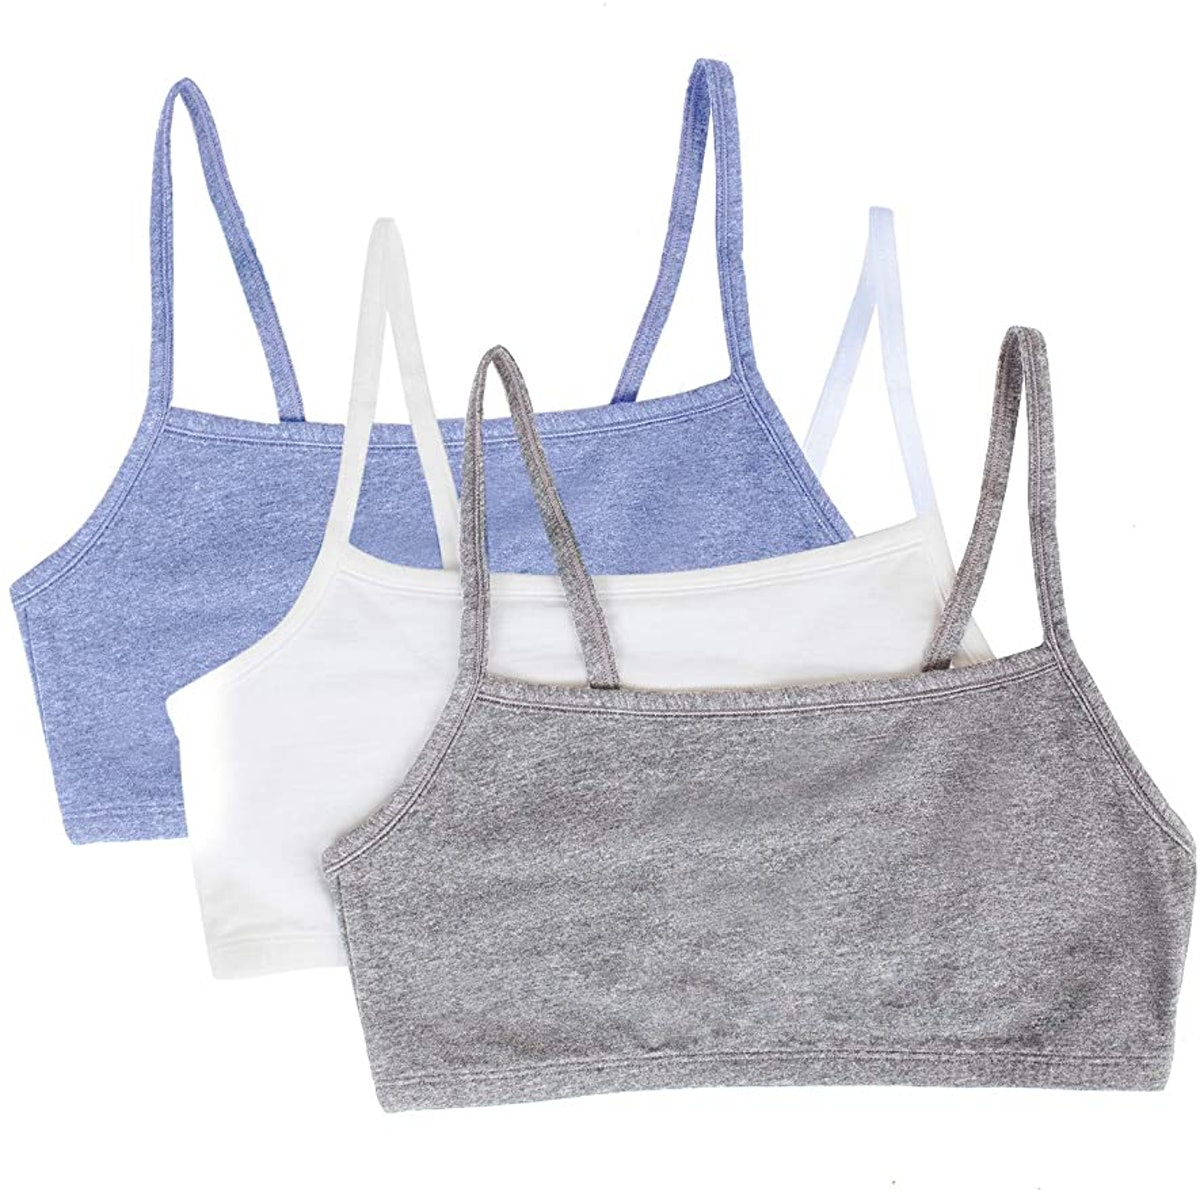 Fruit of the Loom Cotton Sports Bras (Pack of 3)